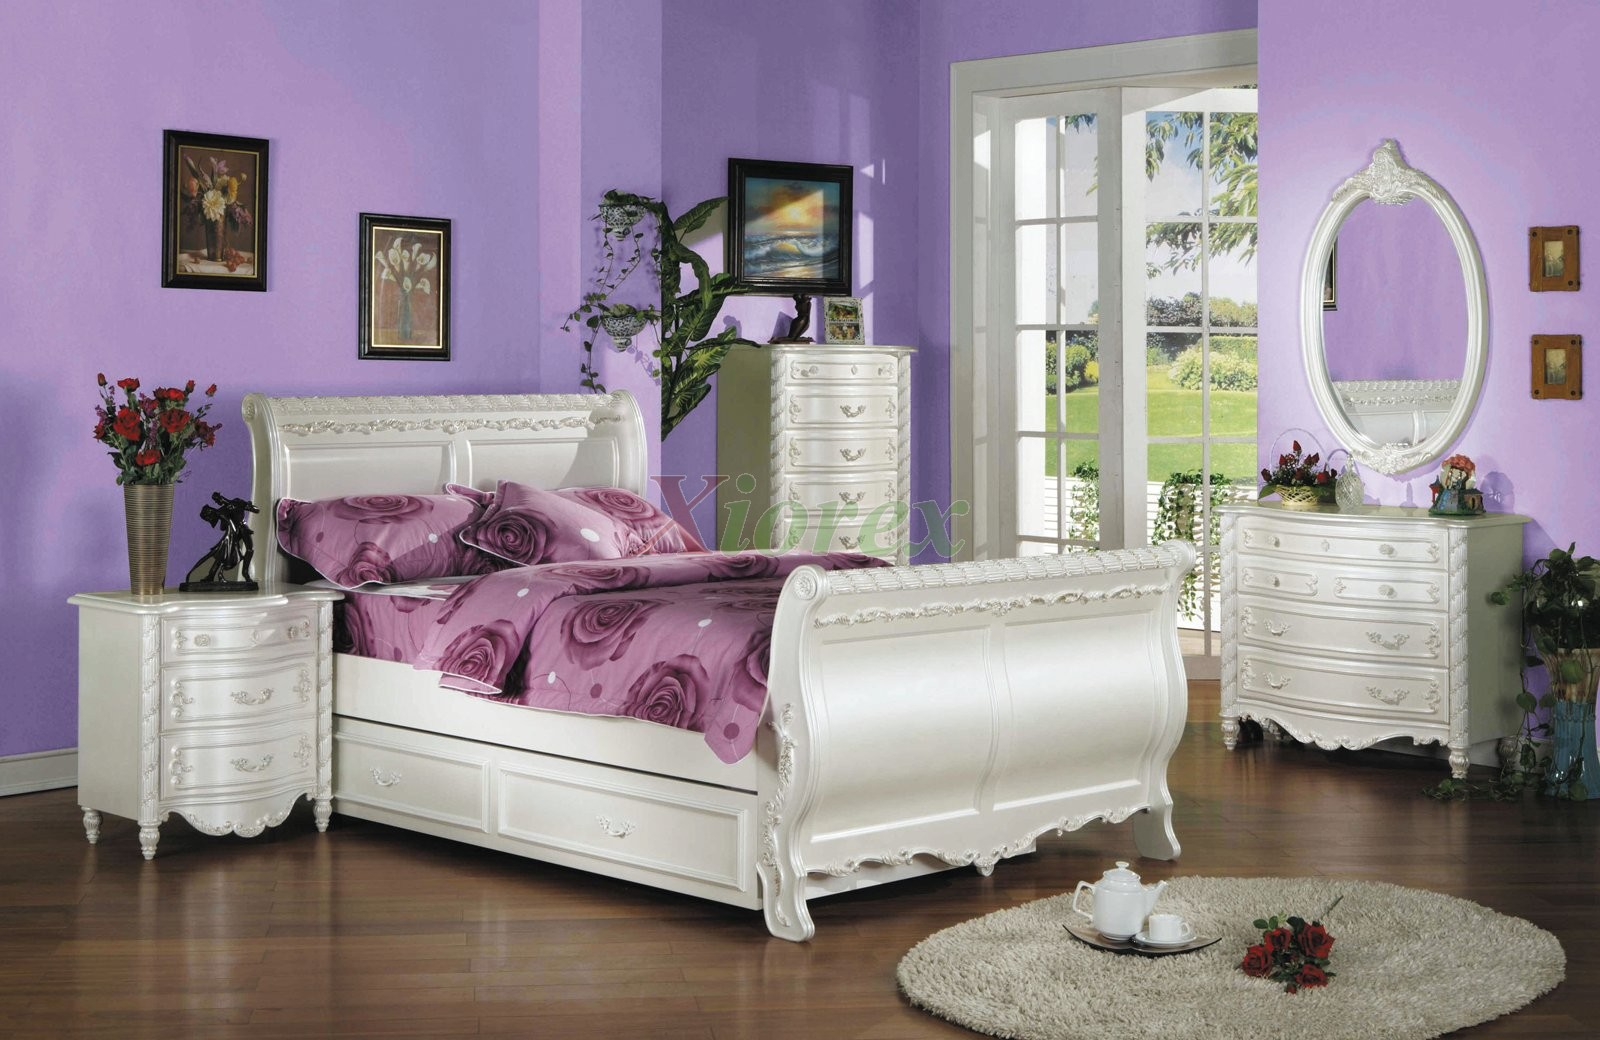 Home design martha girls bedroom furniture sets for Bedroom furnishings